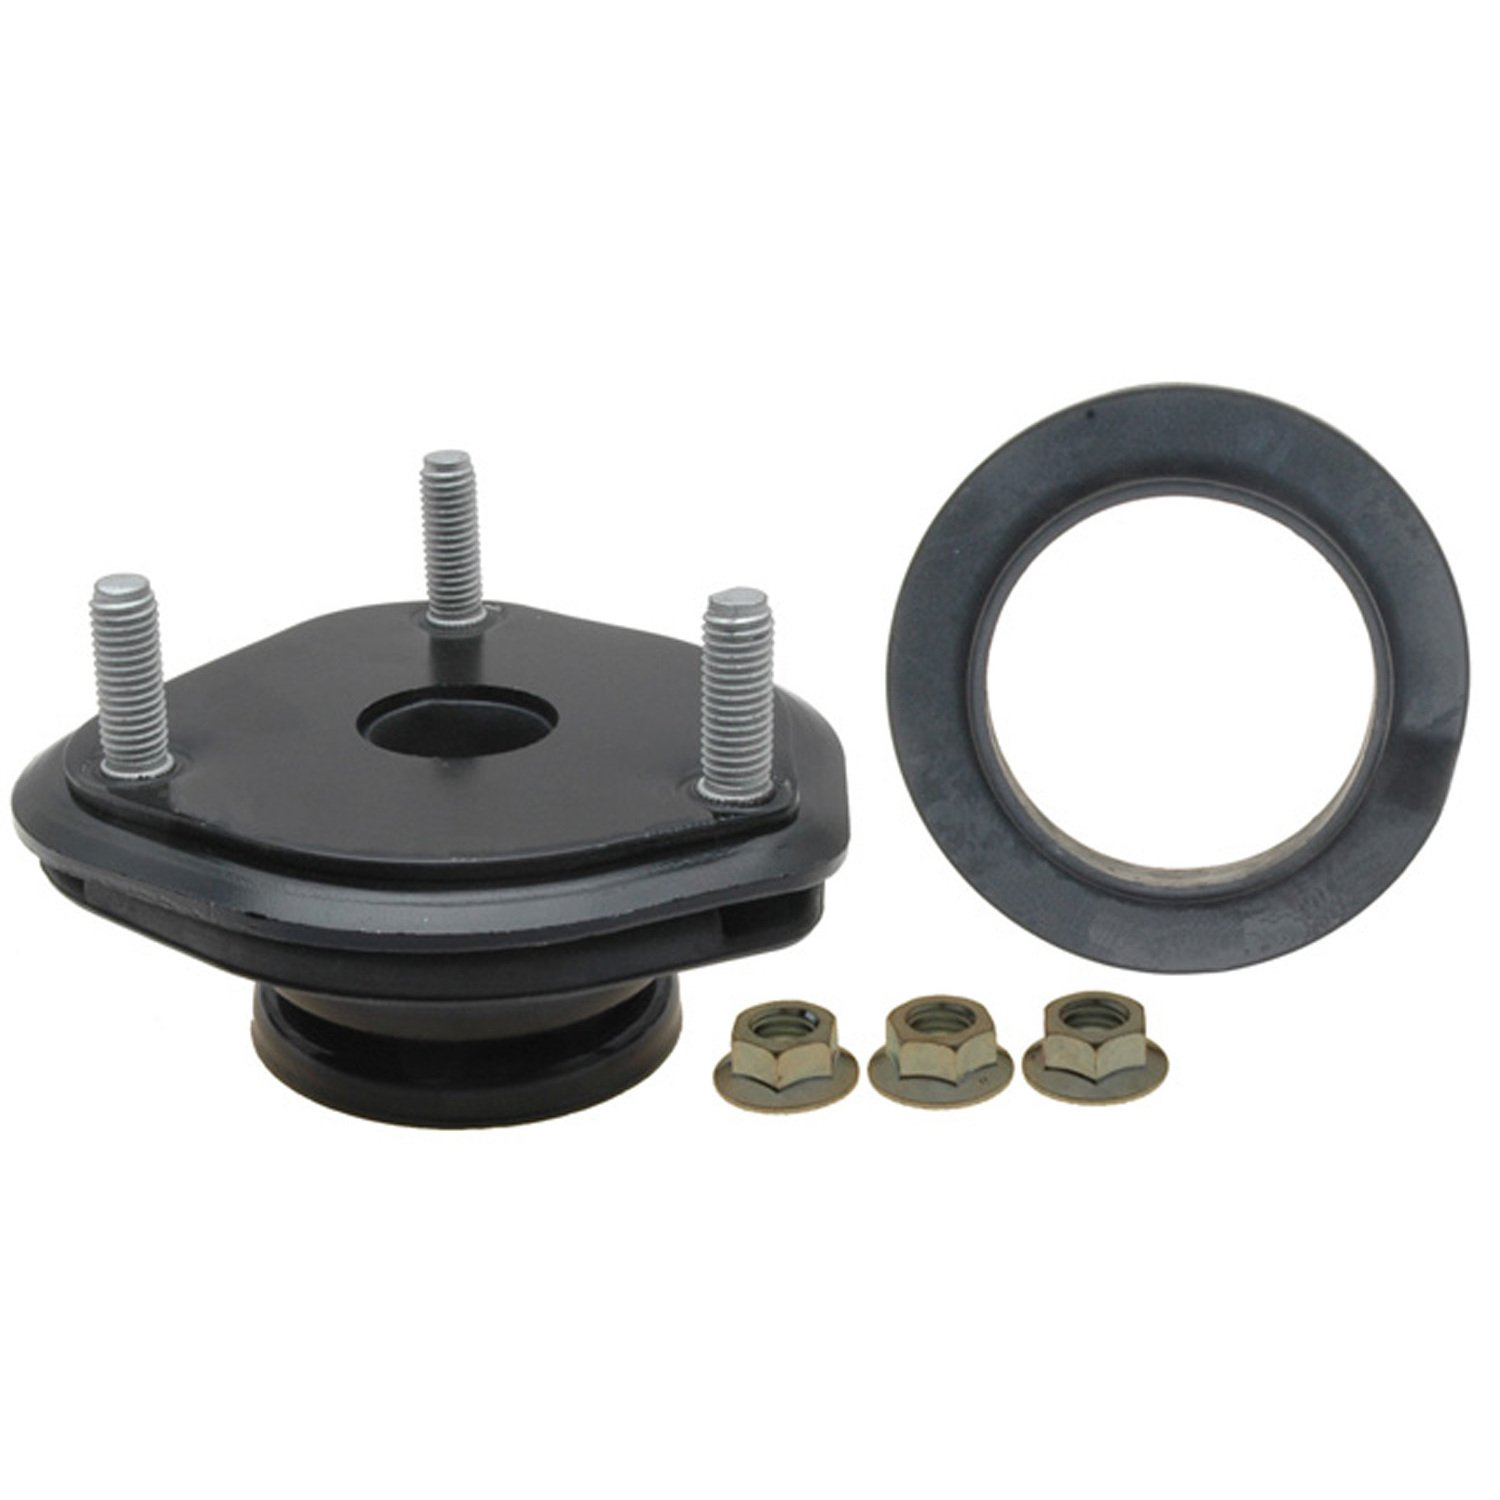 Front Axle Hub Lockout Actuating Knobs 1972-77 F250 4x4 Dana Spicer Left Right Pair EBD2TZ-1A029PR